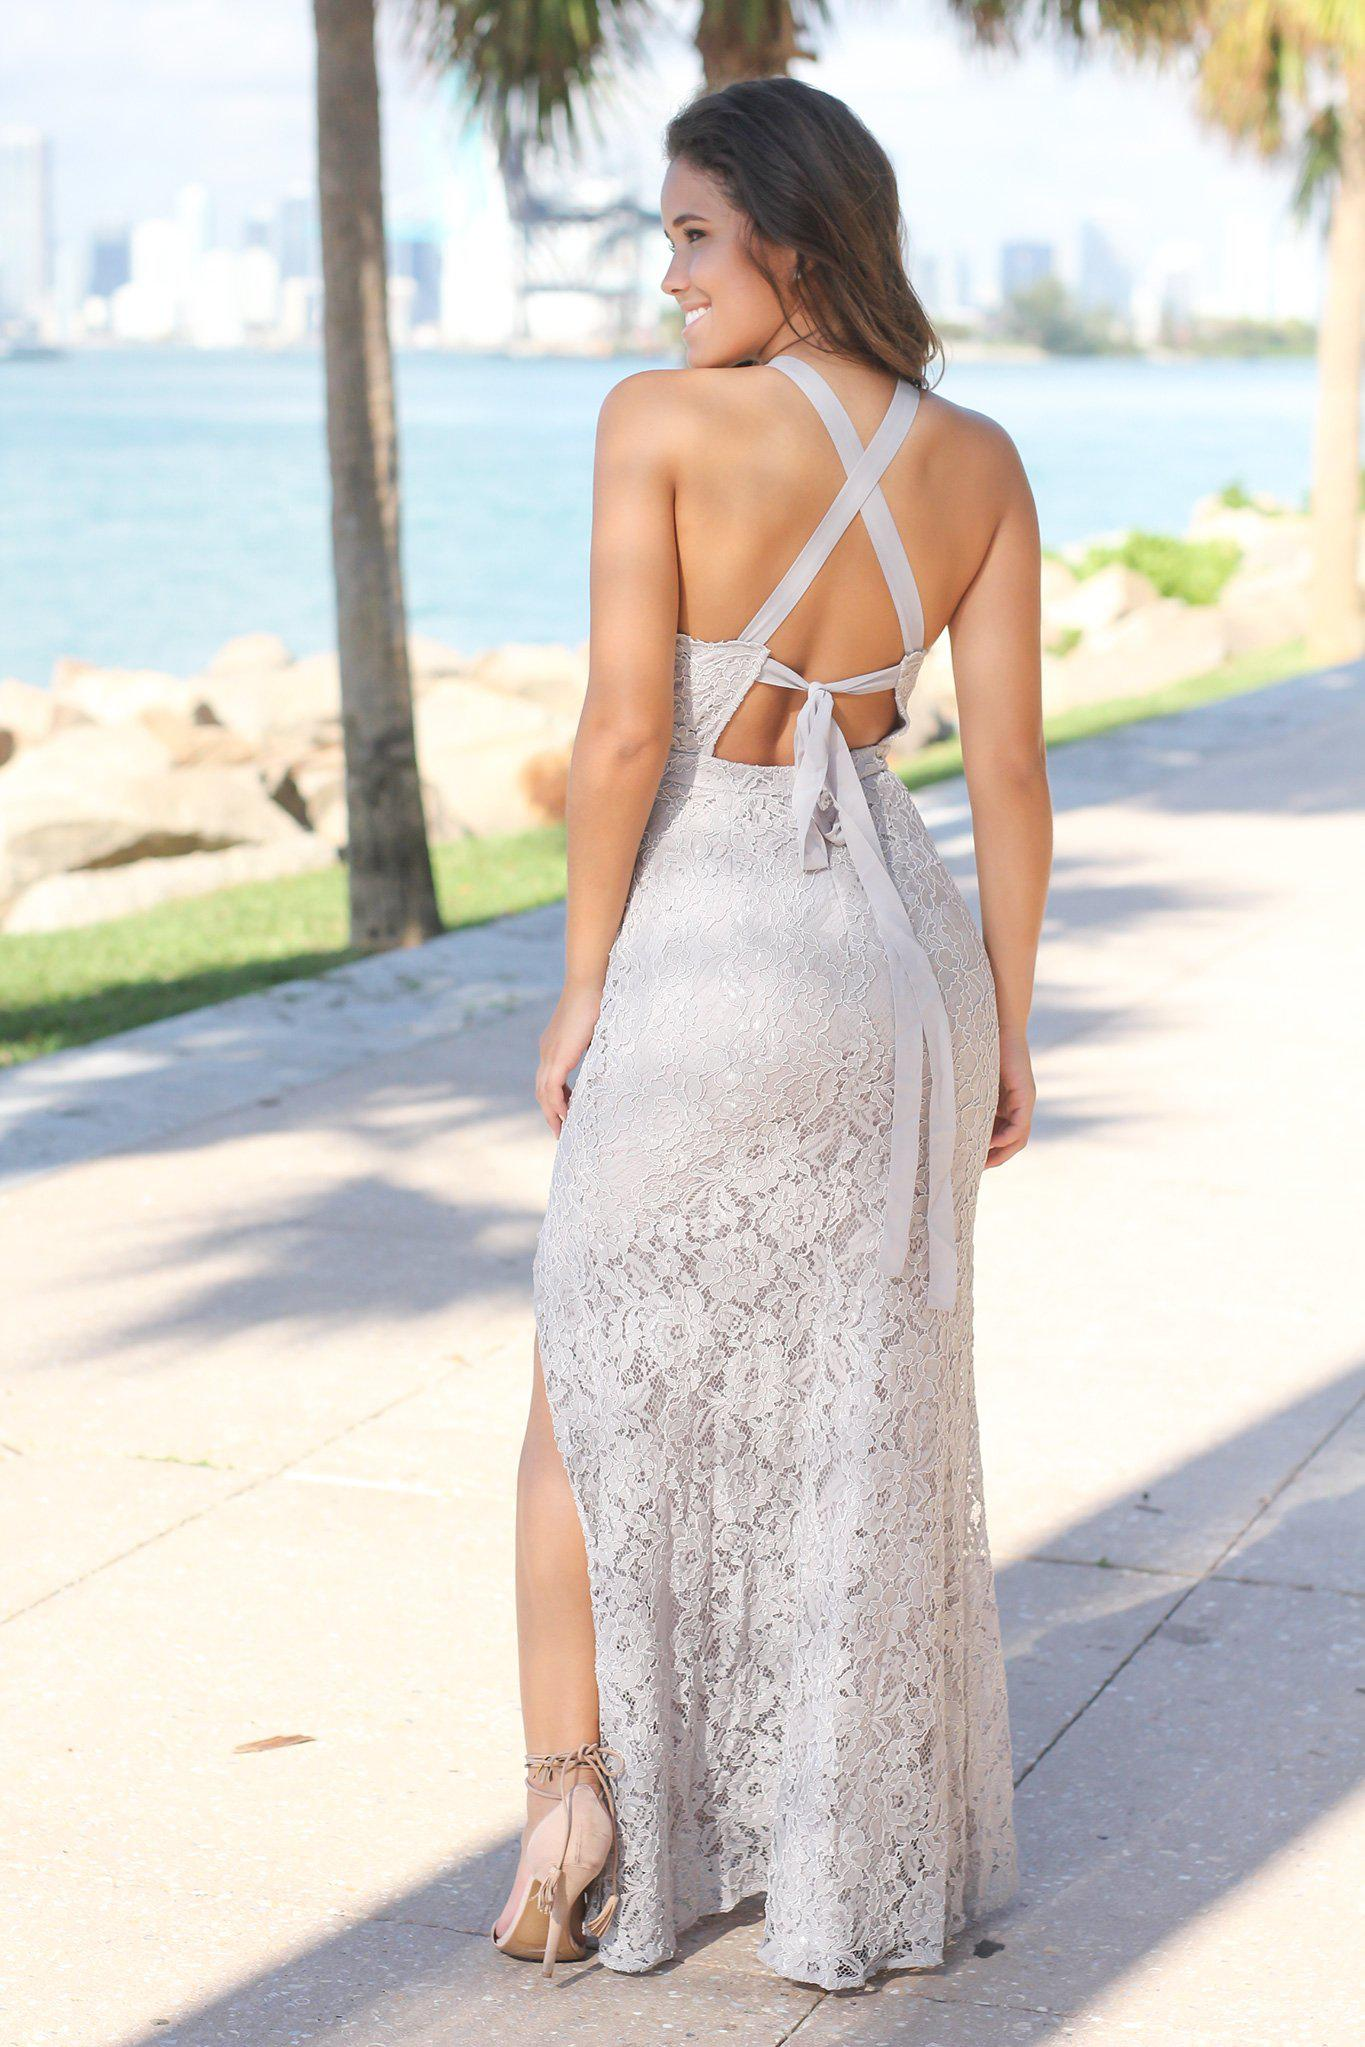 Gray Lace Maxi Dress with Criss Cross Tie Back